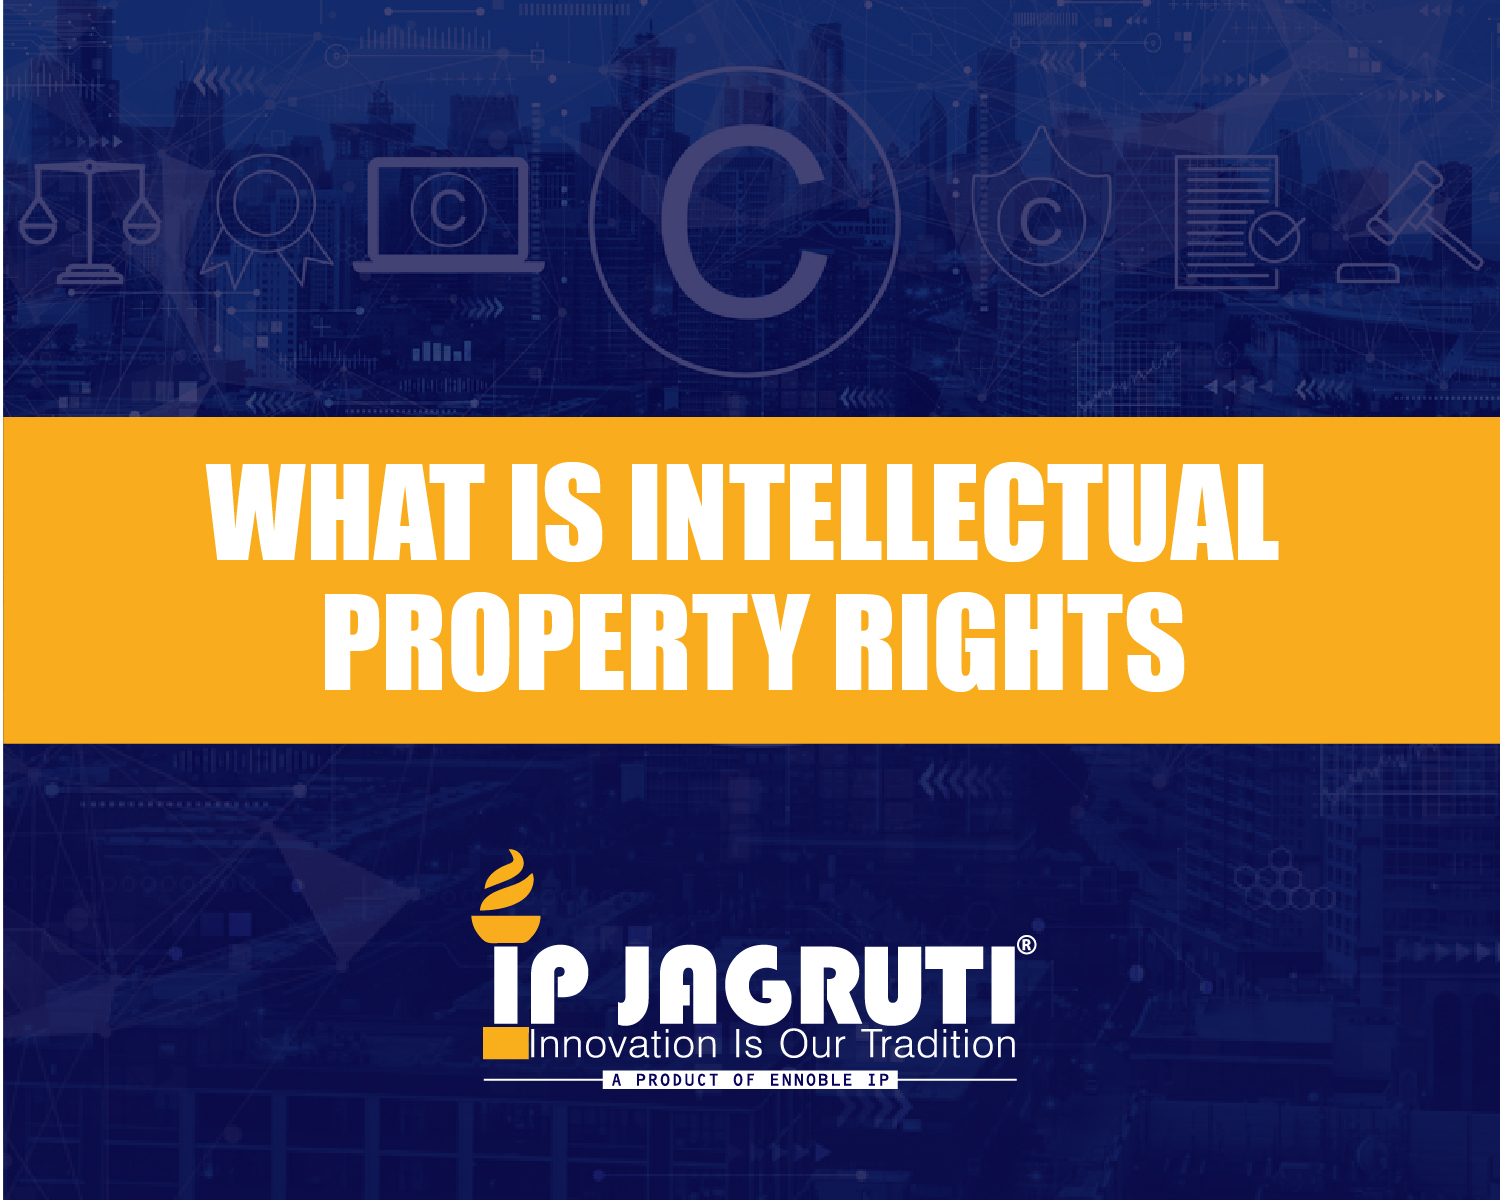 What is intellectual property rights.